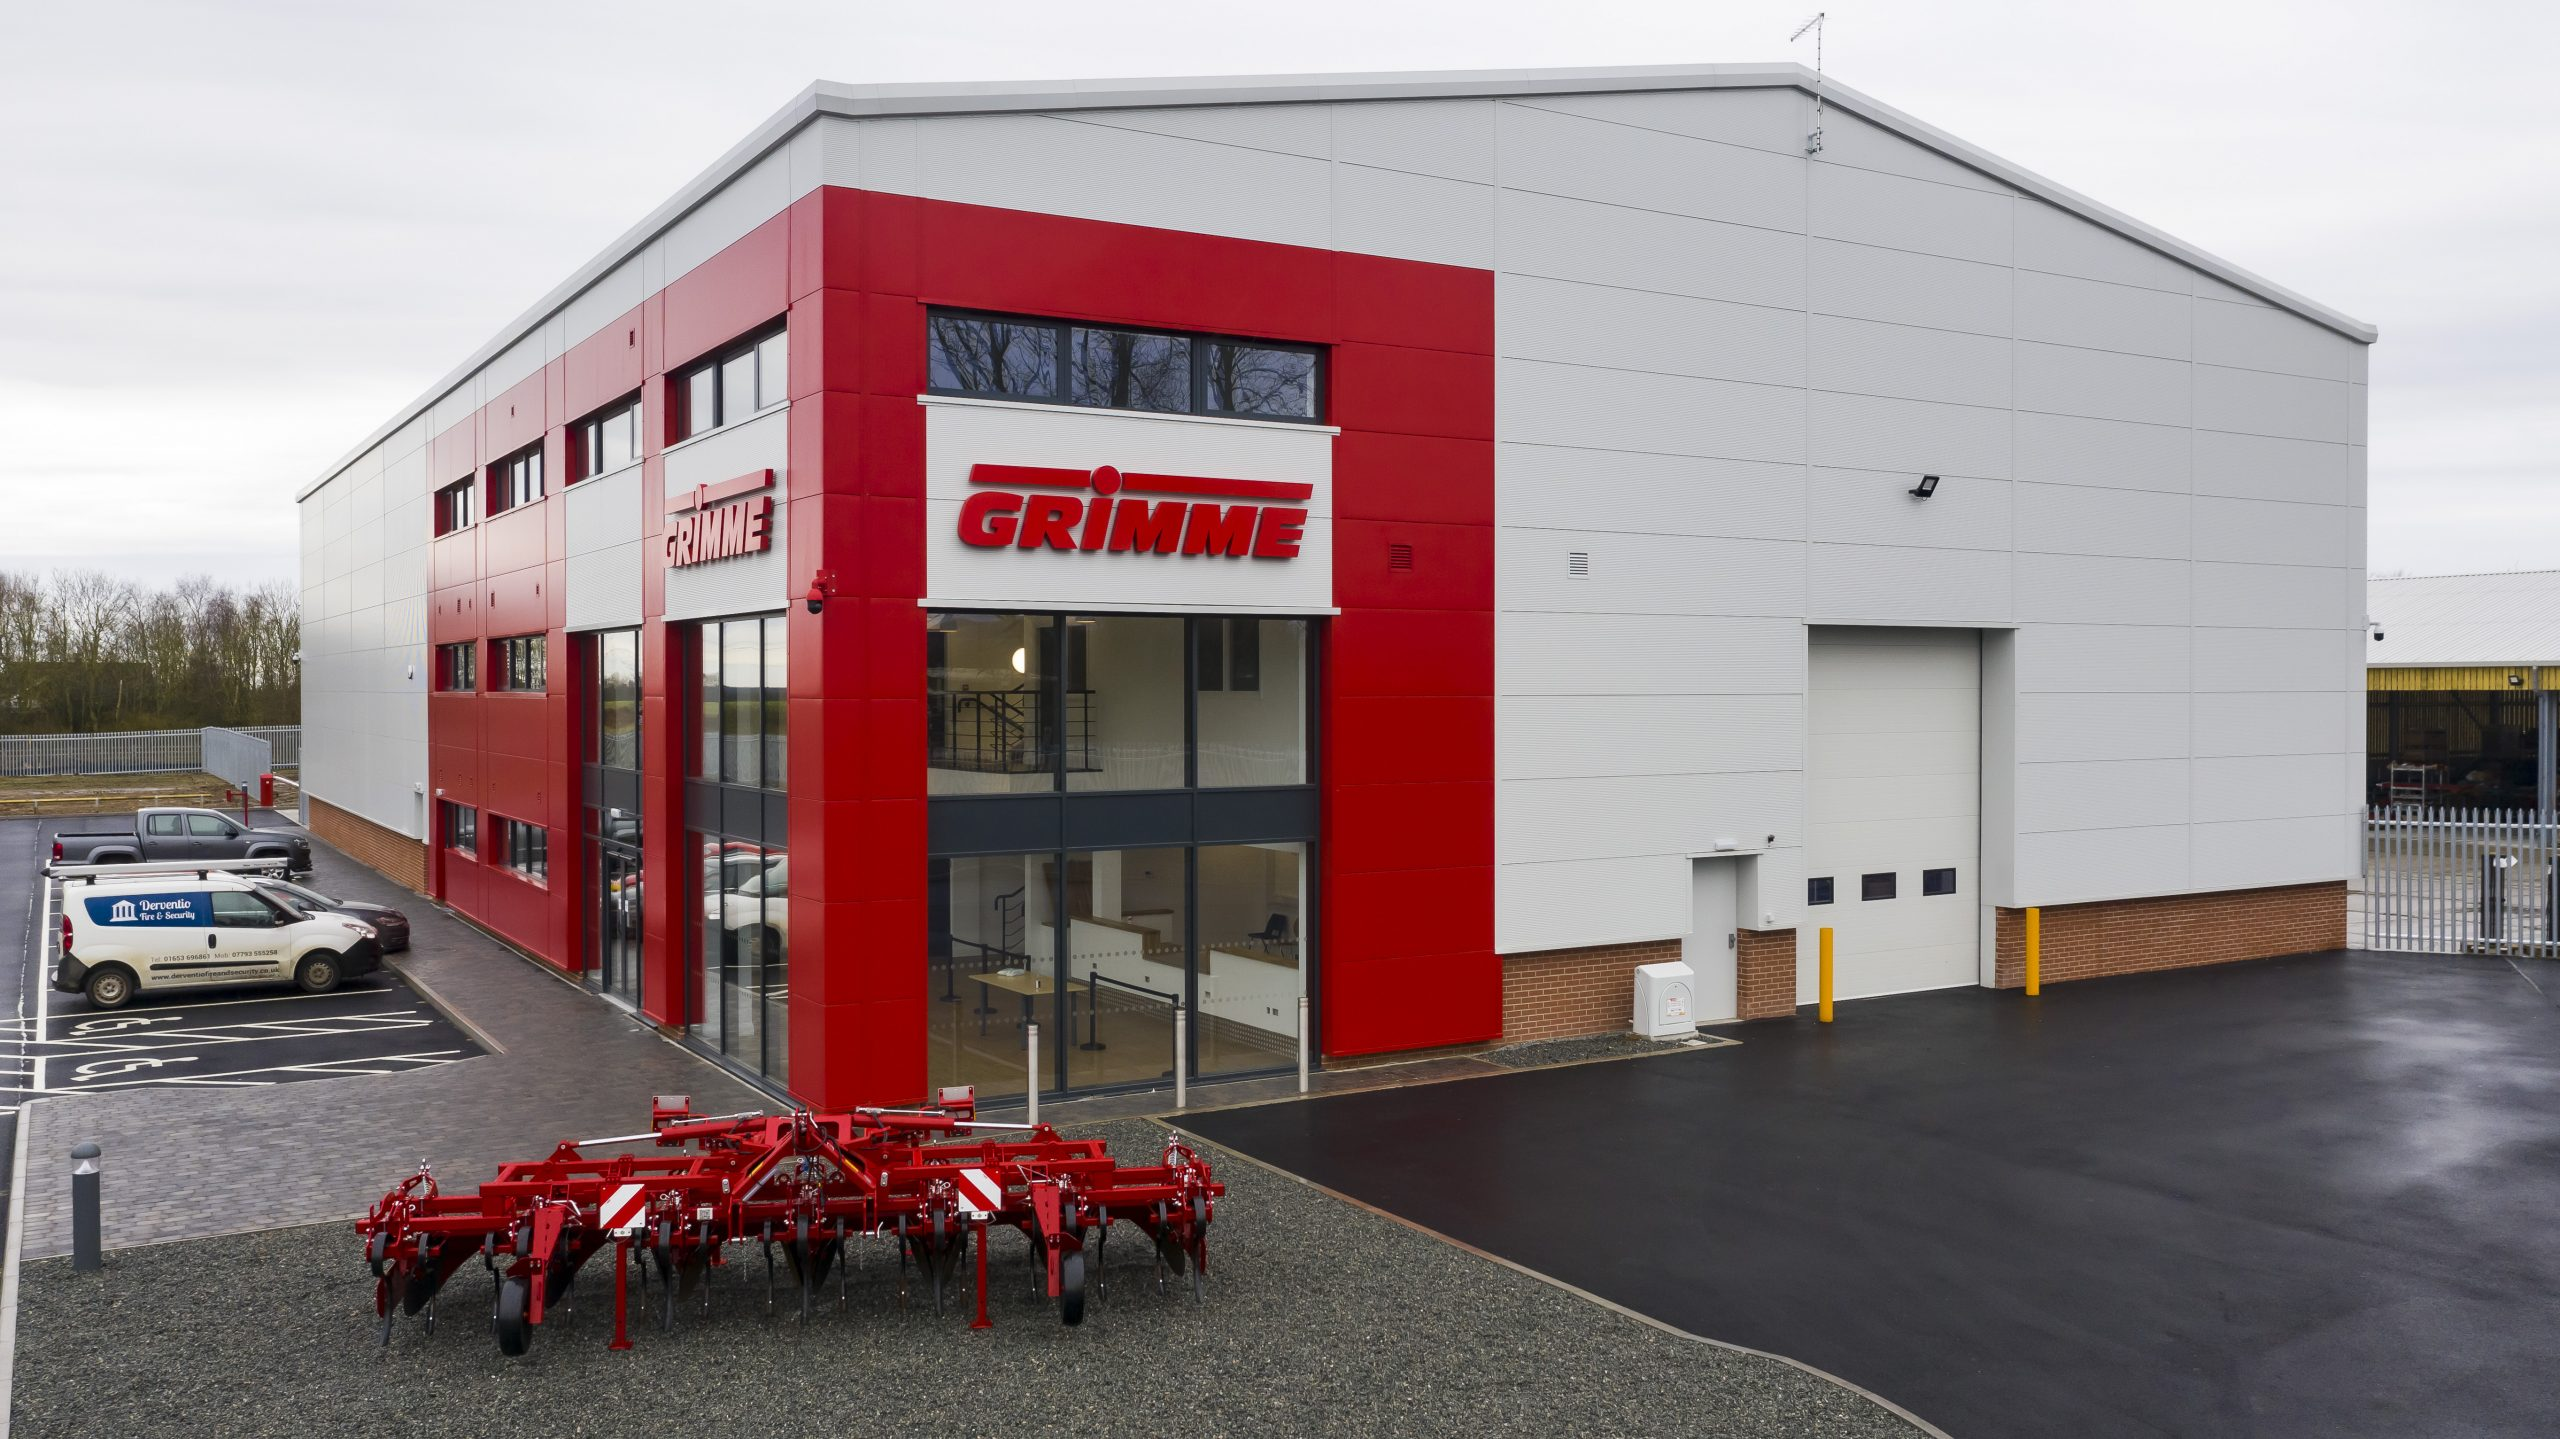 New £3.5m premises handed over to German company